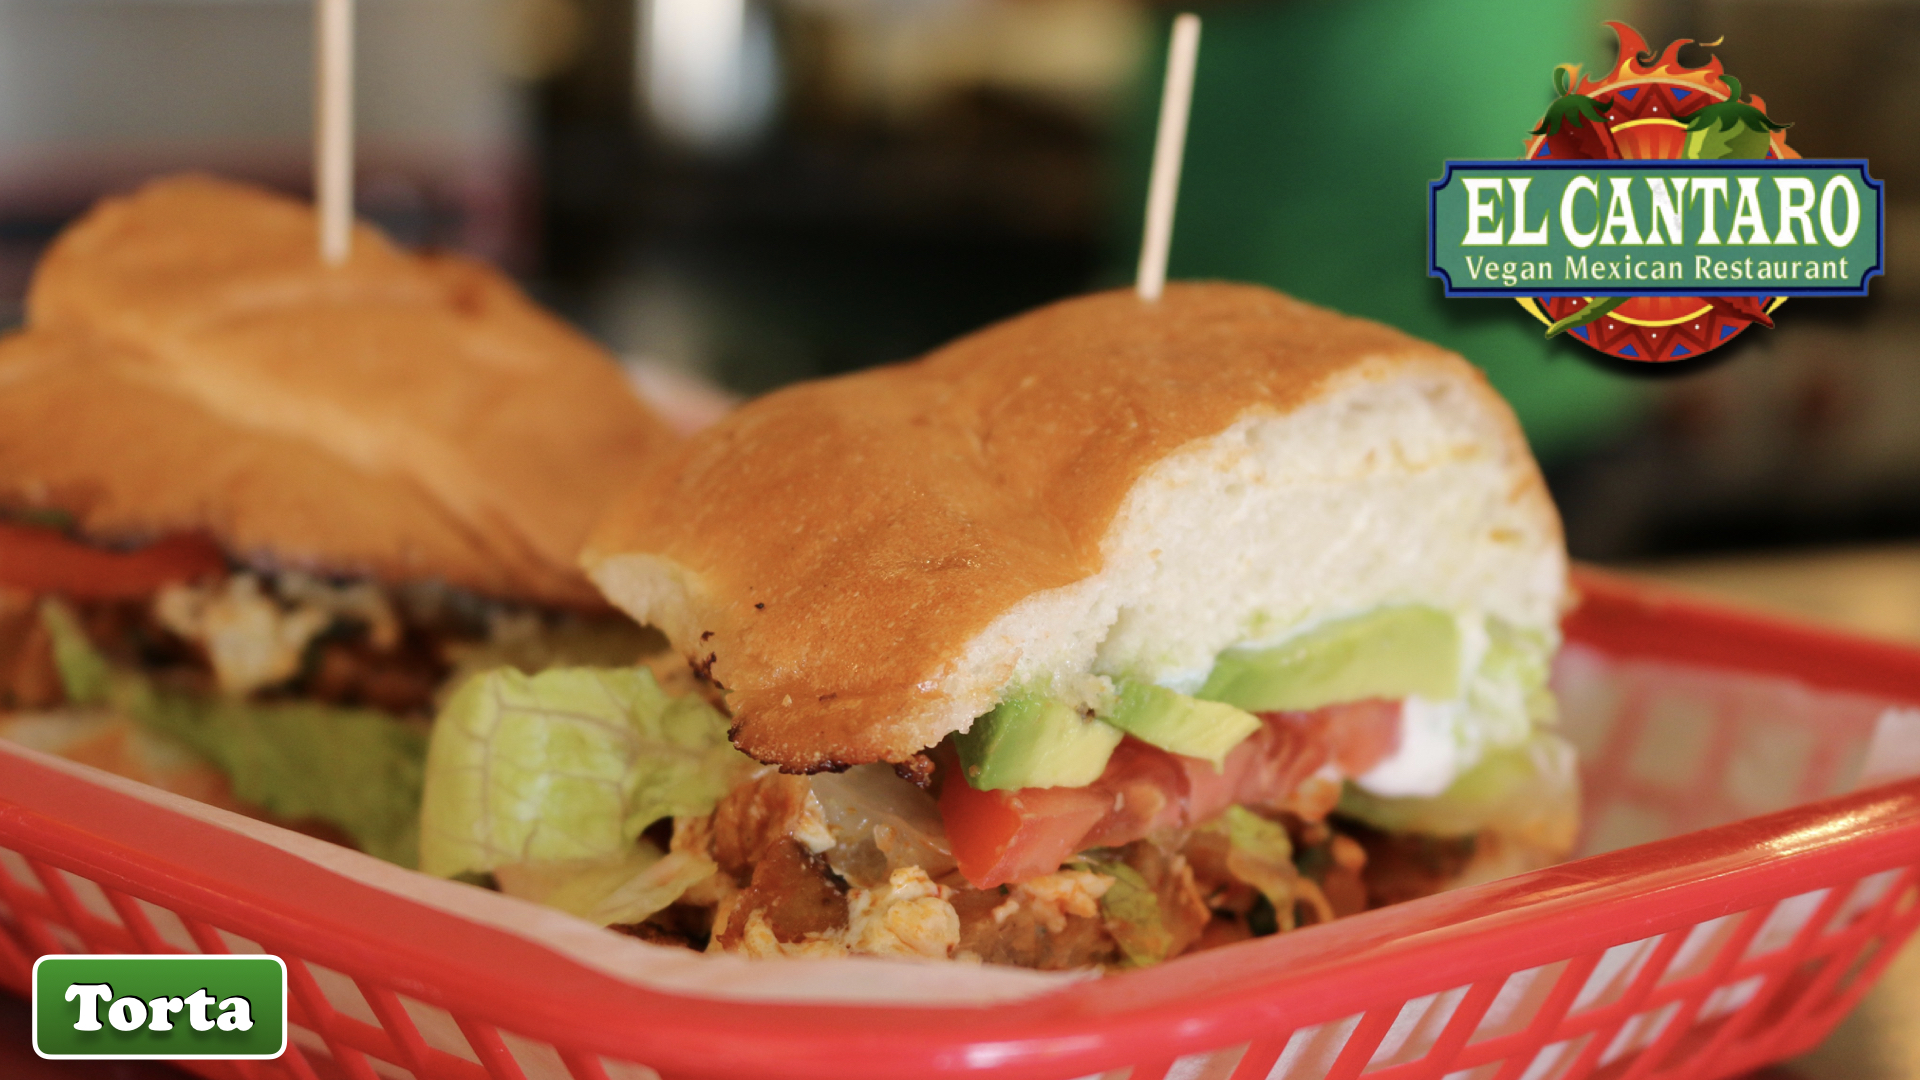 Torta Chickin', Steak or Mushroom